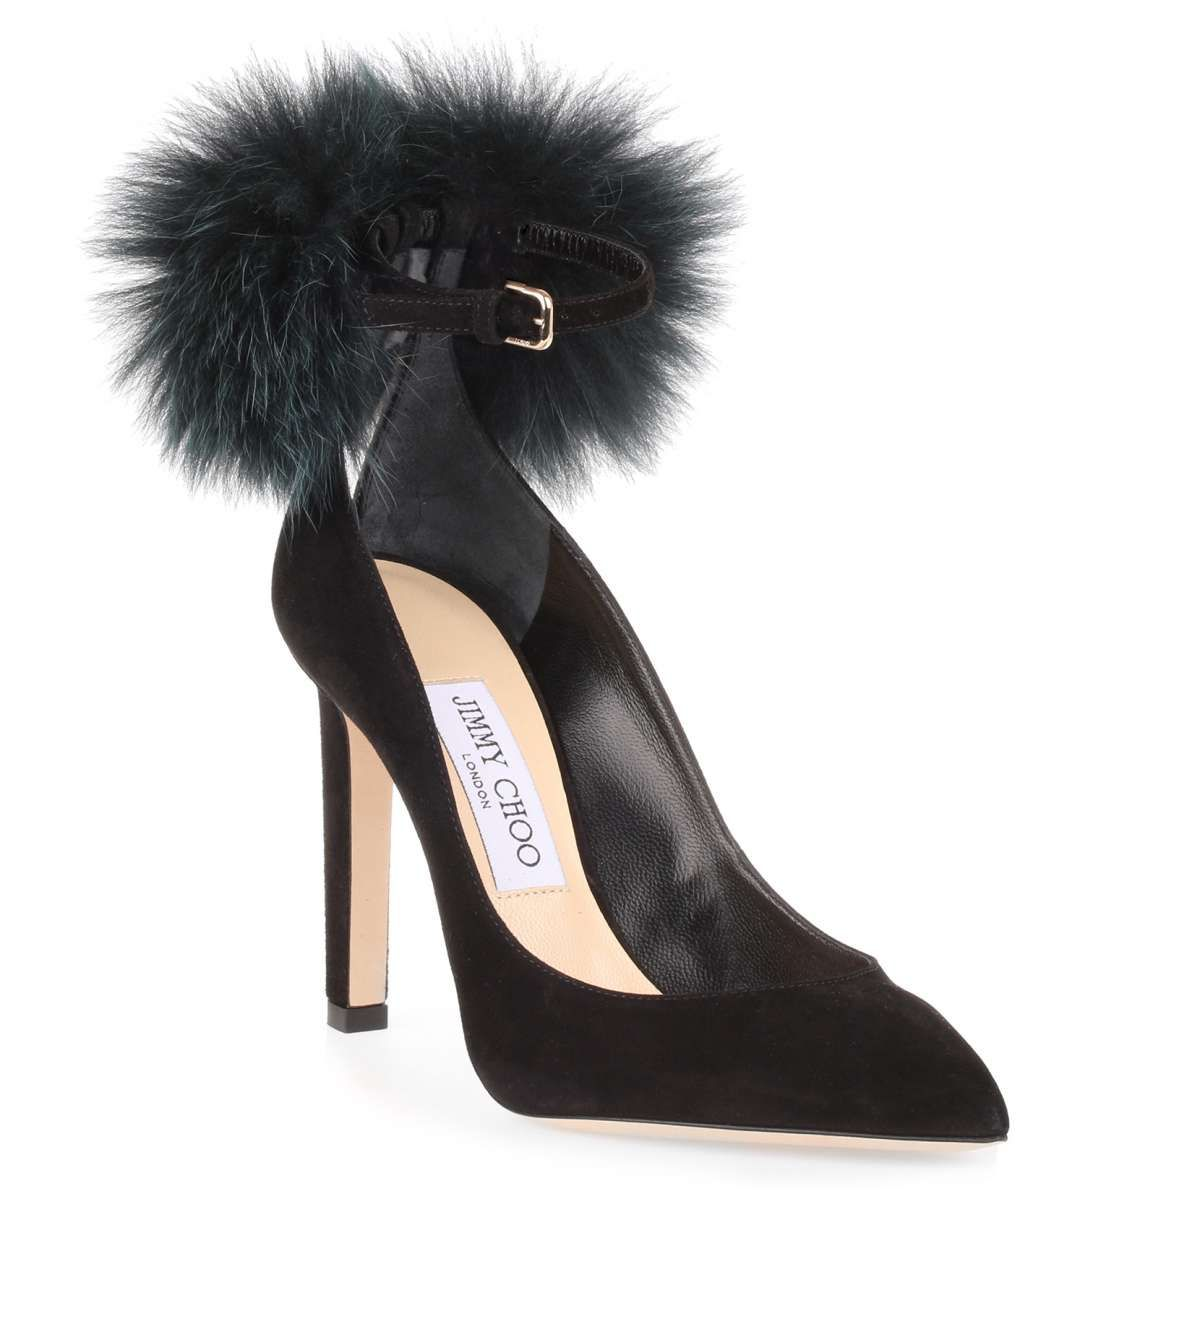 Clearance Collections Outlet Genuine Boots suede Fur upper Pompom brown grey Jimmy Choo London 2018 For Sale Sale Best Seller 2018 Newest qFWfY